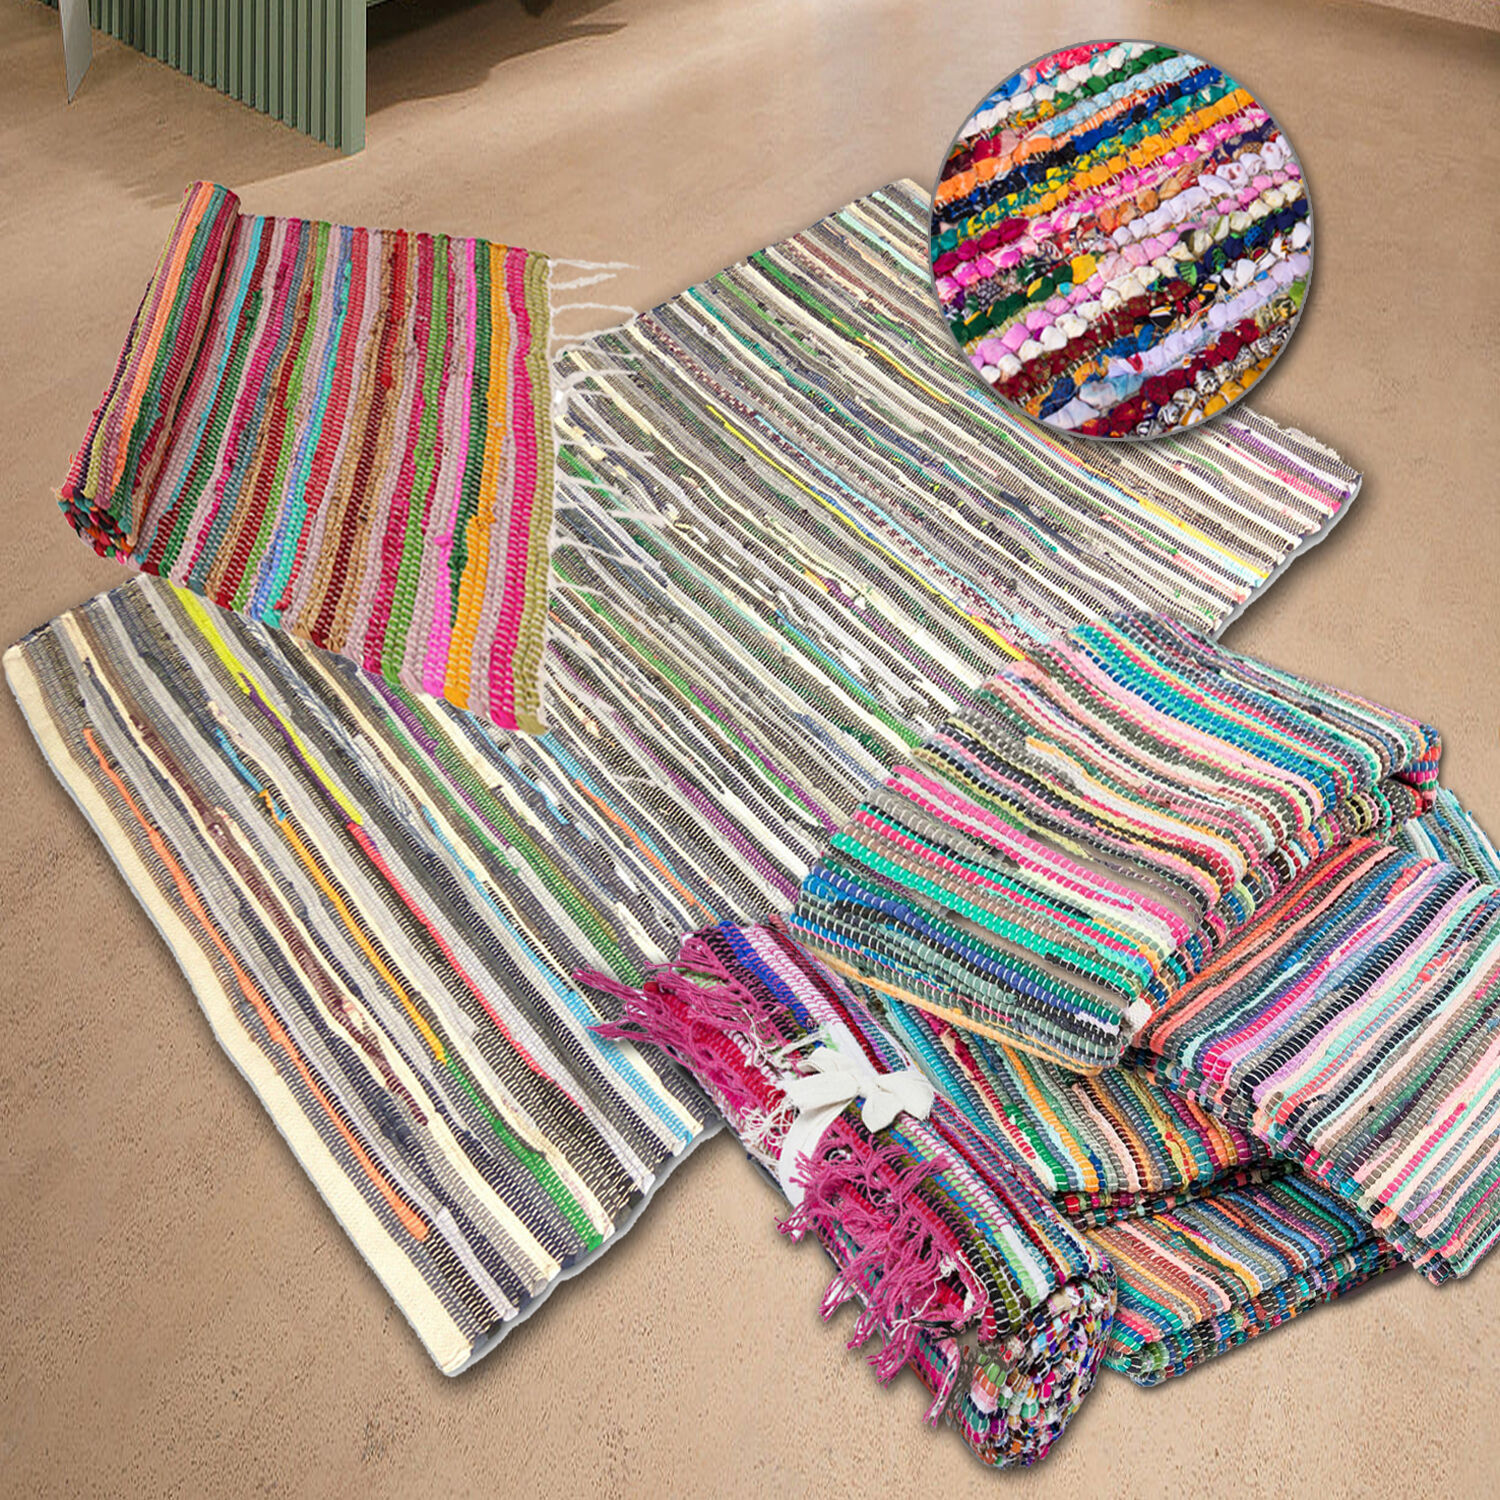 MULTI COLOURED HAND LOOMED INDIAN CHINDI STRIPED RAG RUGS